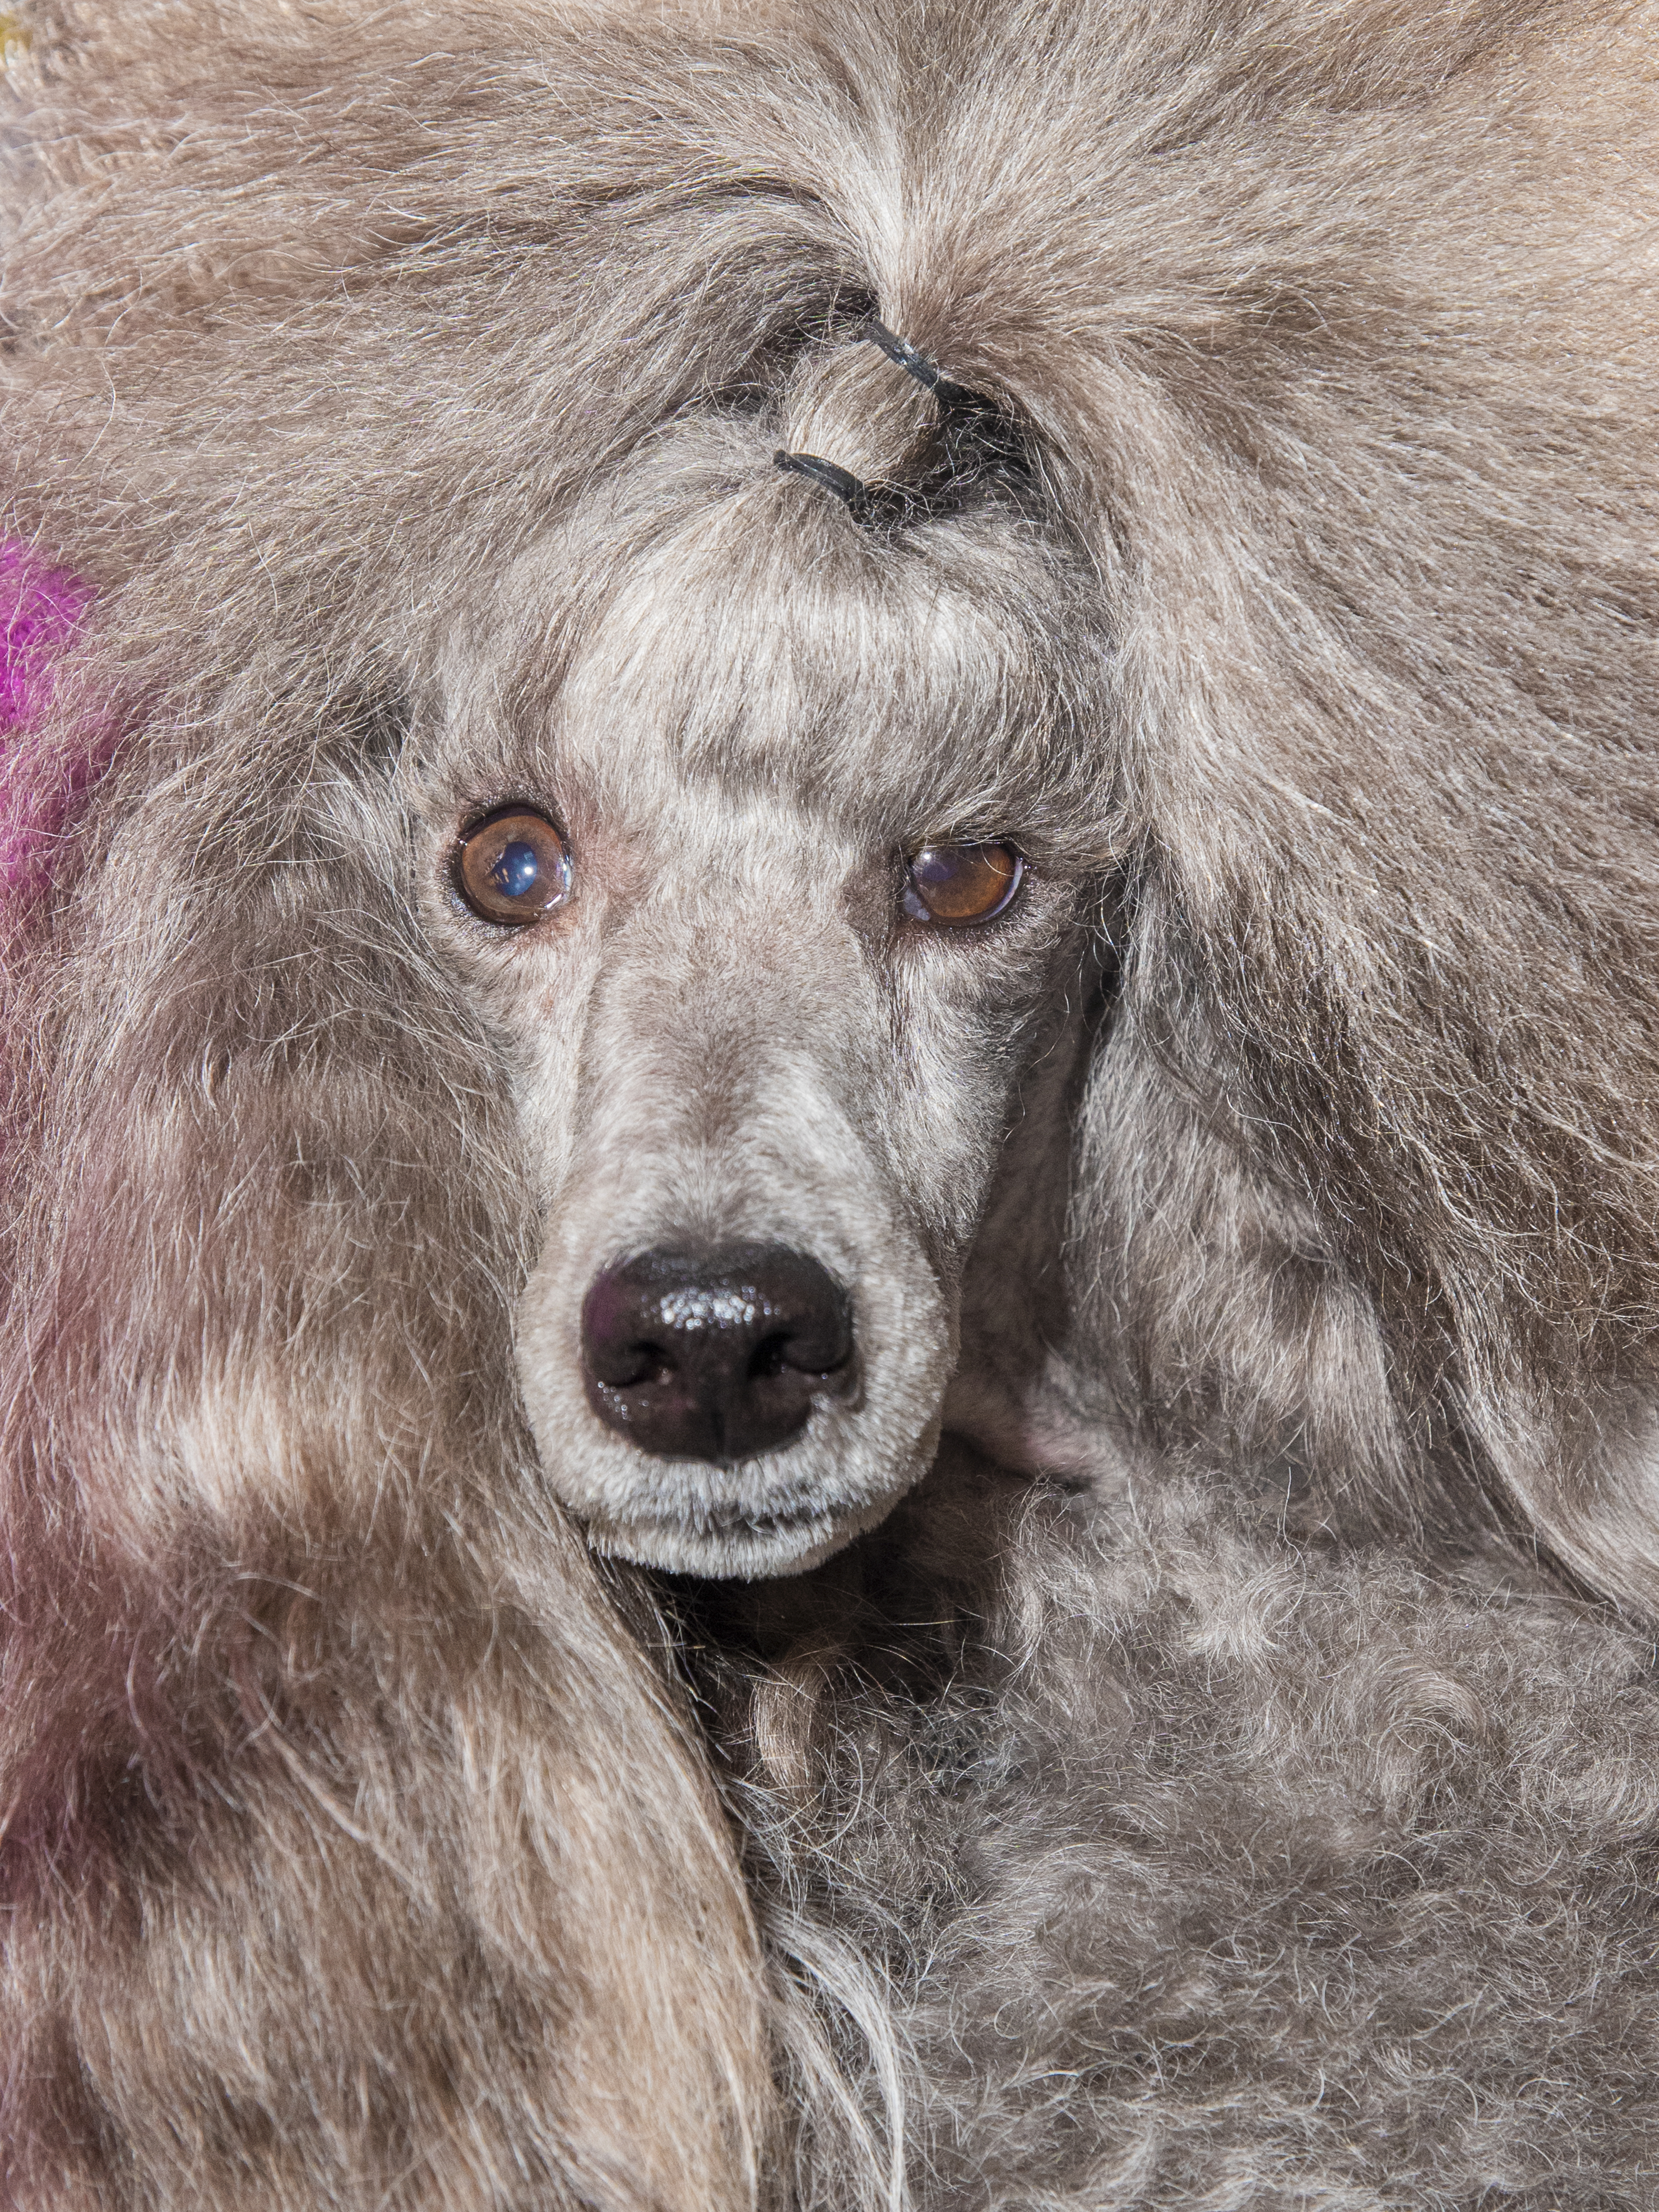 A poodle poses for a portrait at the Westminster Dog Show in New York City on Feb. 10, 2020.